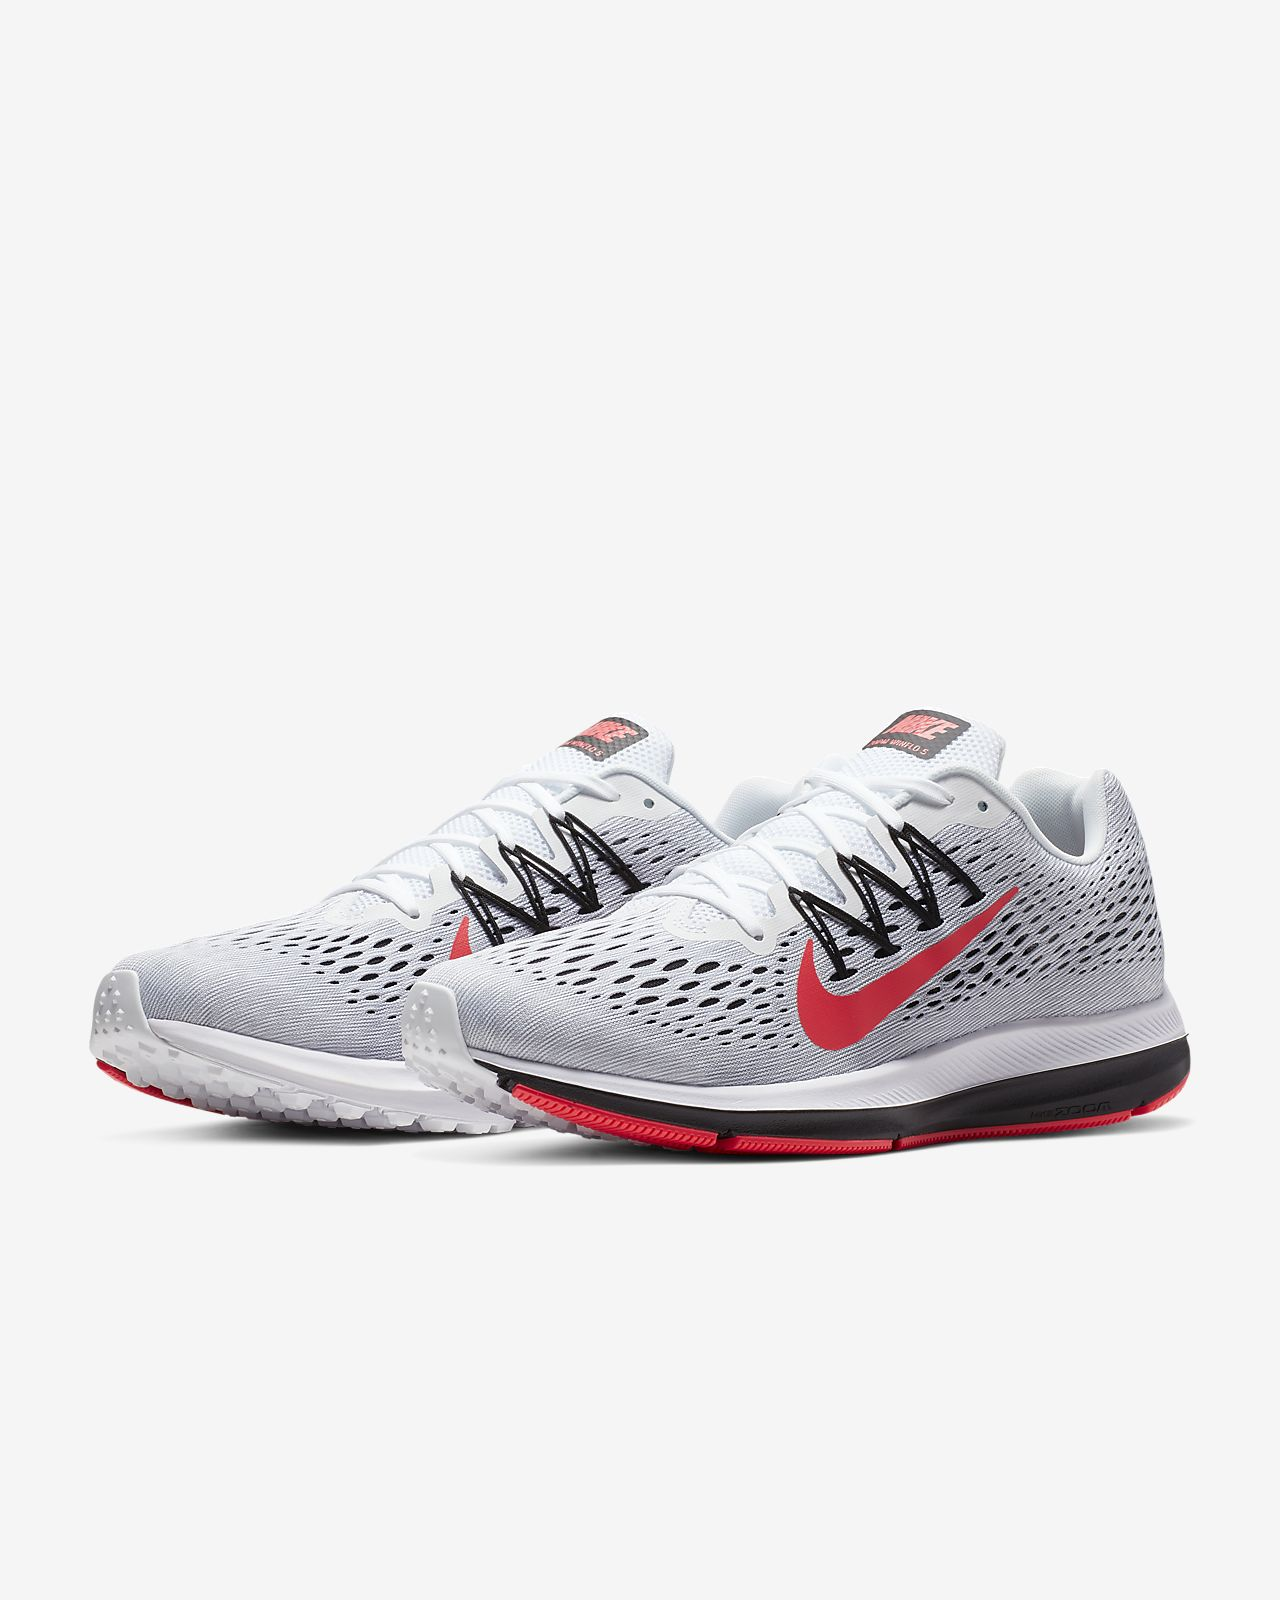 finest selection d8d2d 8398f Nike Air Zoom Winflo 5 Men's Running Shoe